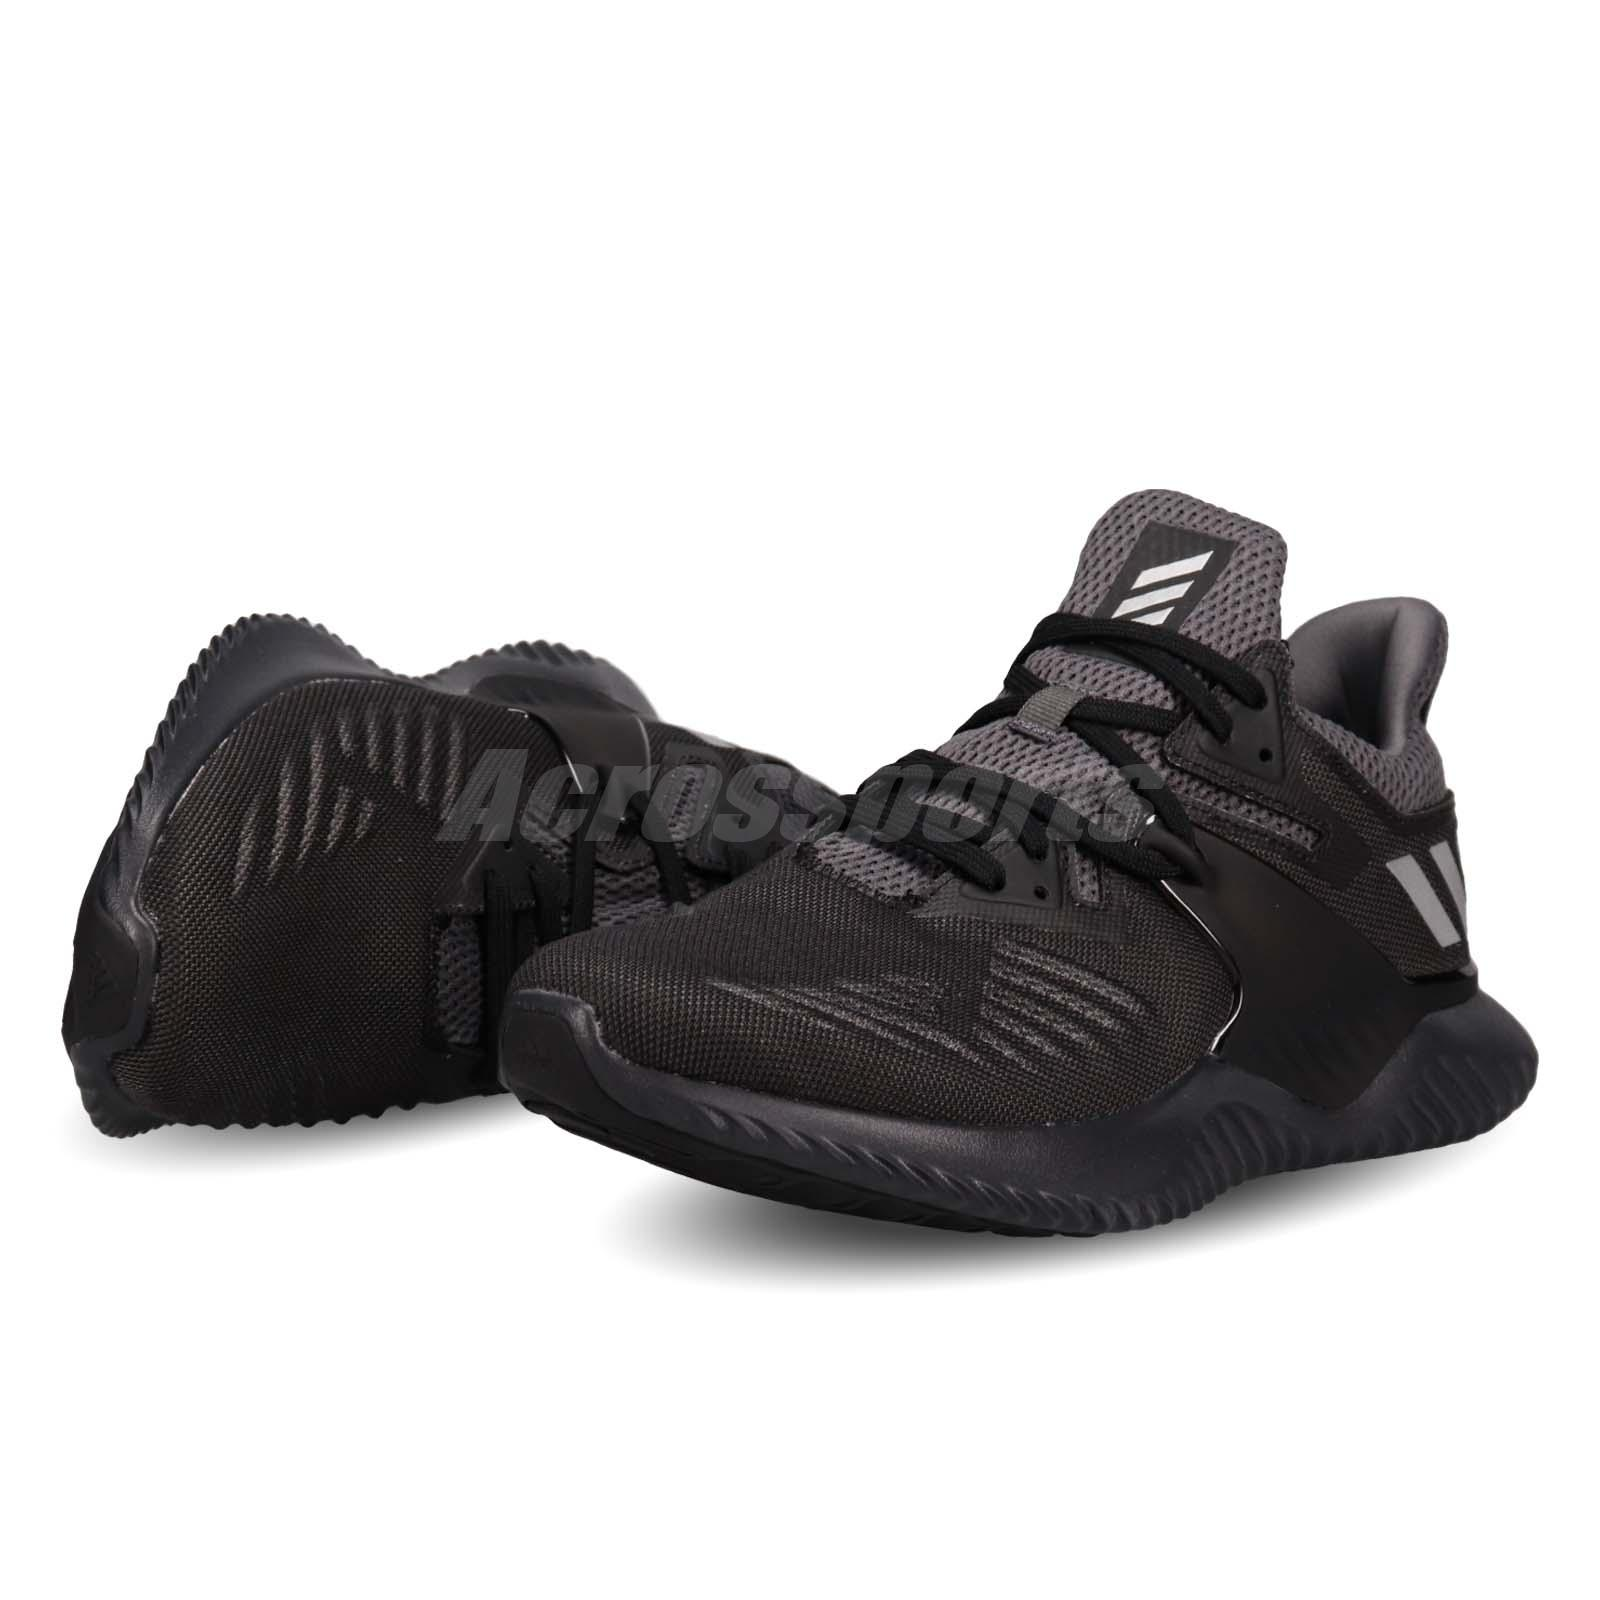 Details about adidas Alphabounce Beyond 2 M Black Silver Men Running Shoes  Sneakers BB7568